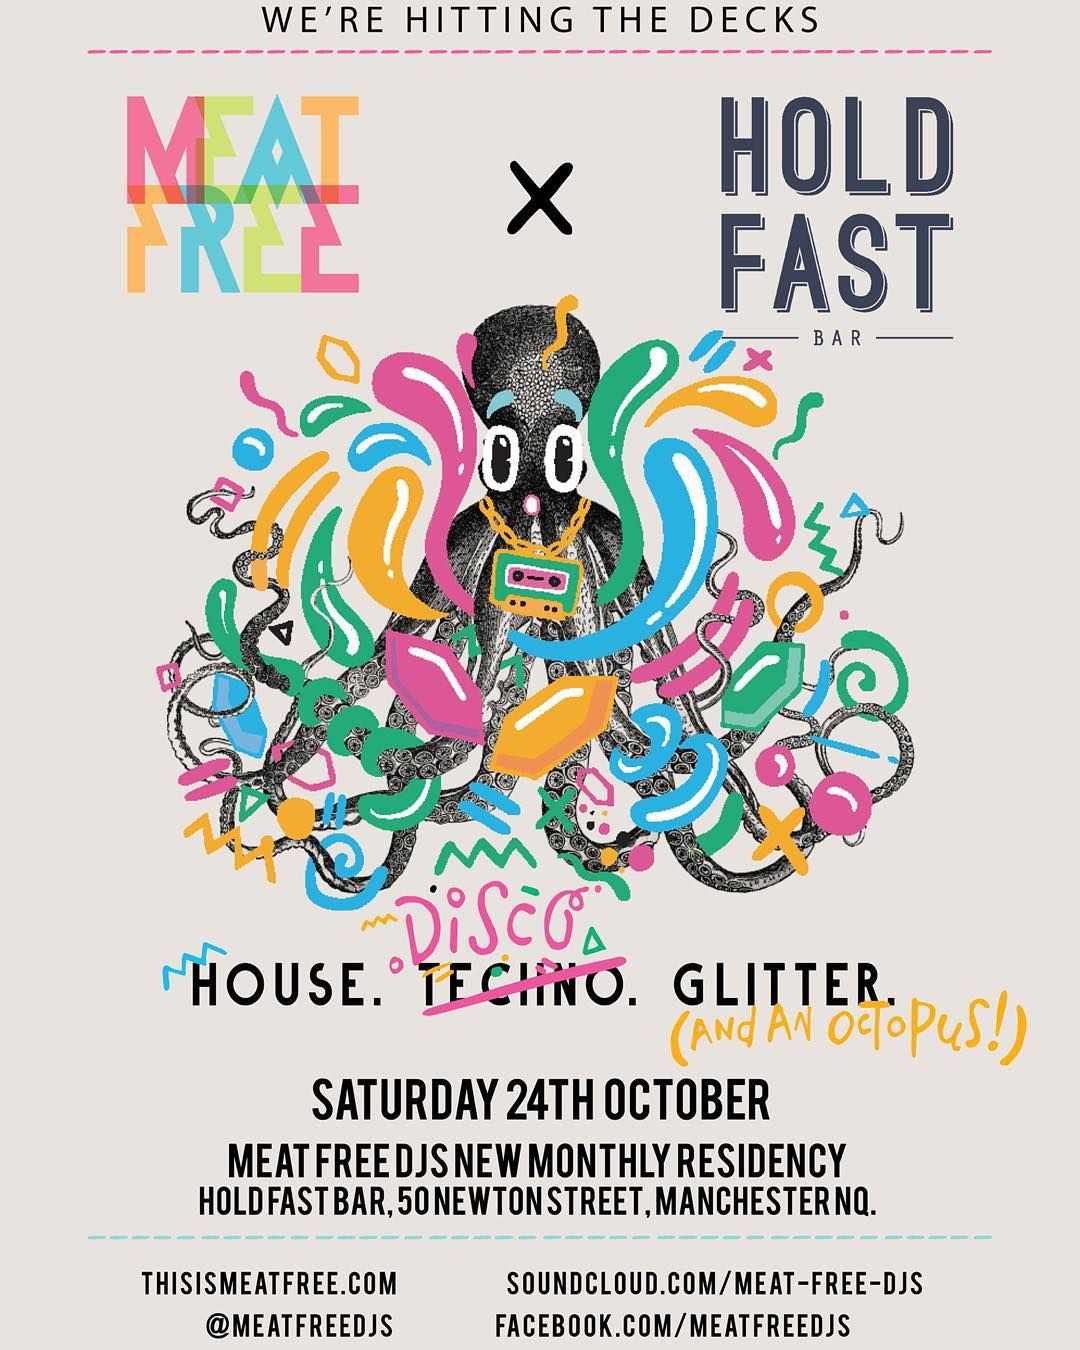 Meat Free DJs are back for a new monthly residency this weekend! Saturday night until 3:00am. You game?  #Manchester #MCRUK #NQ #MCRLIVE by hold_fastnq